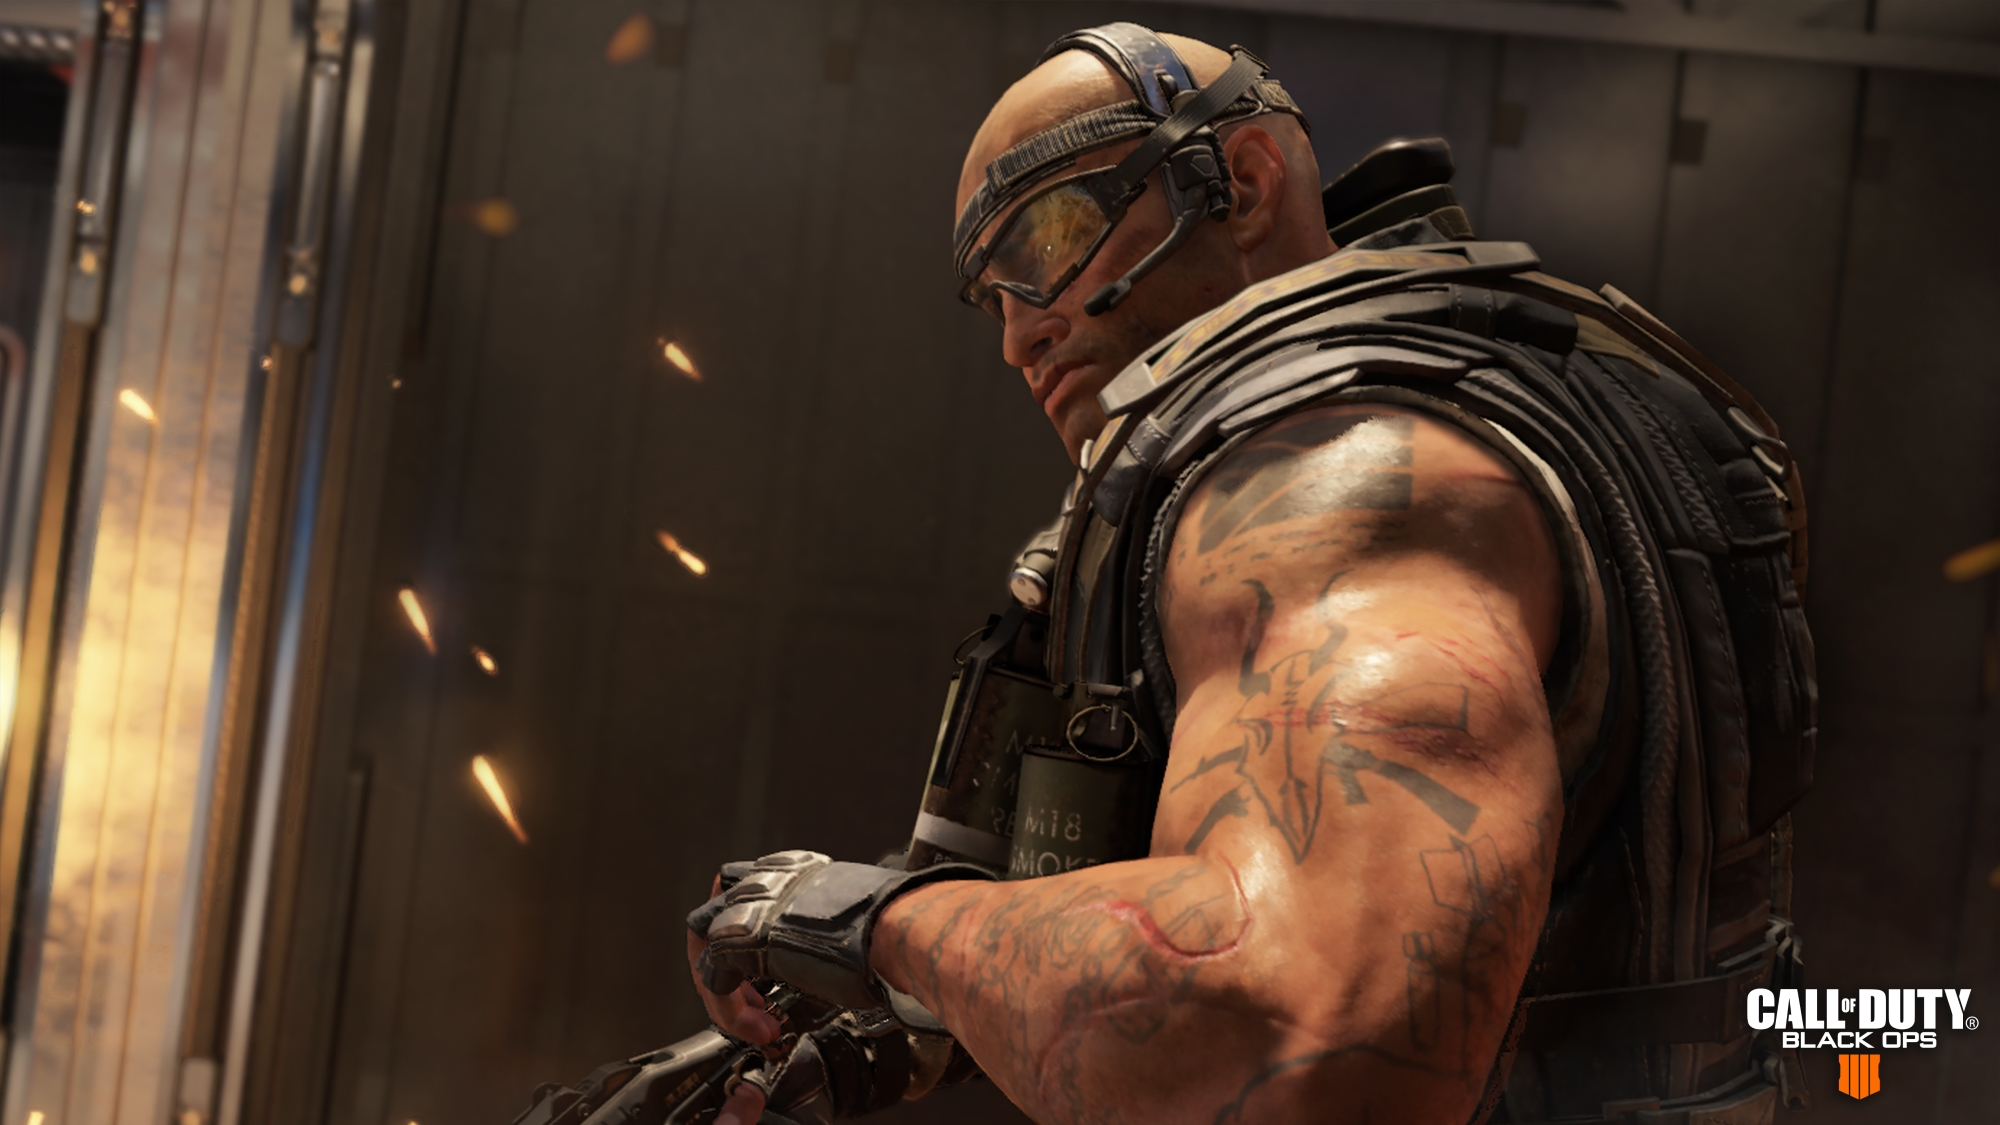 Call Of Duty: Black Ops 4 - how big a problem is the lack of story campaign?